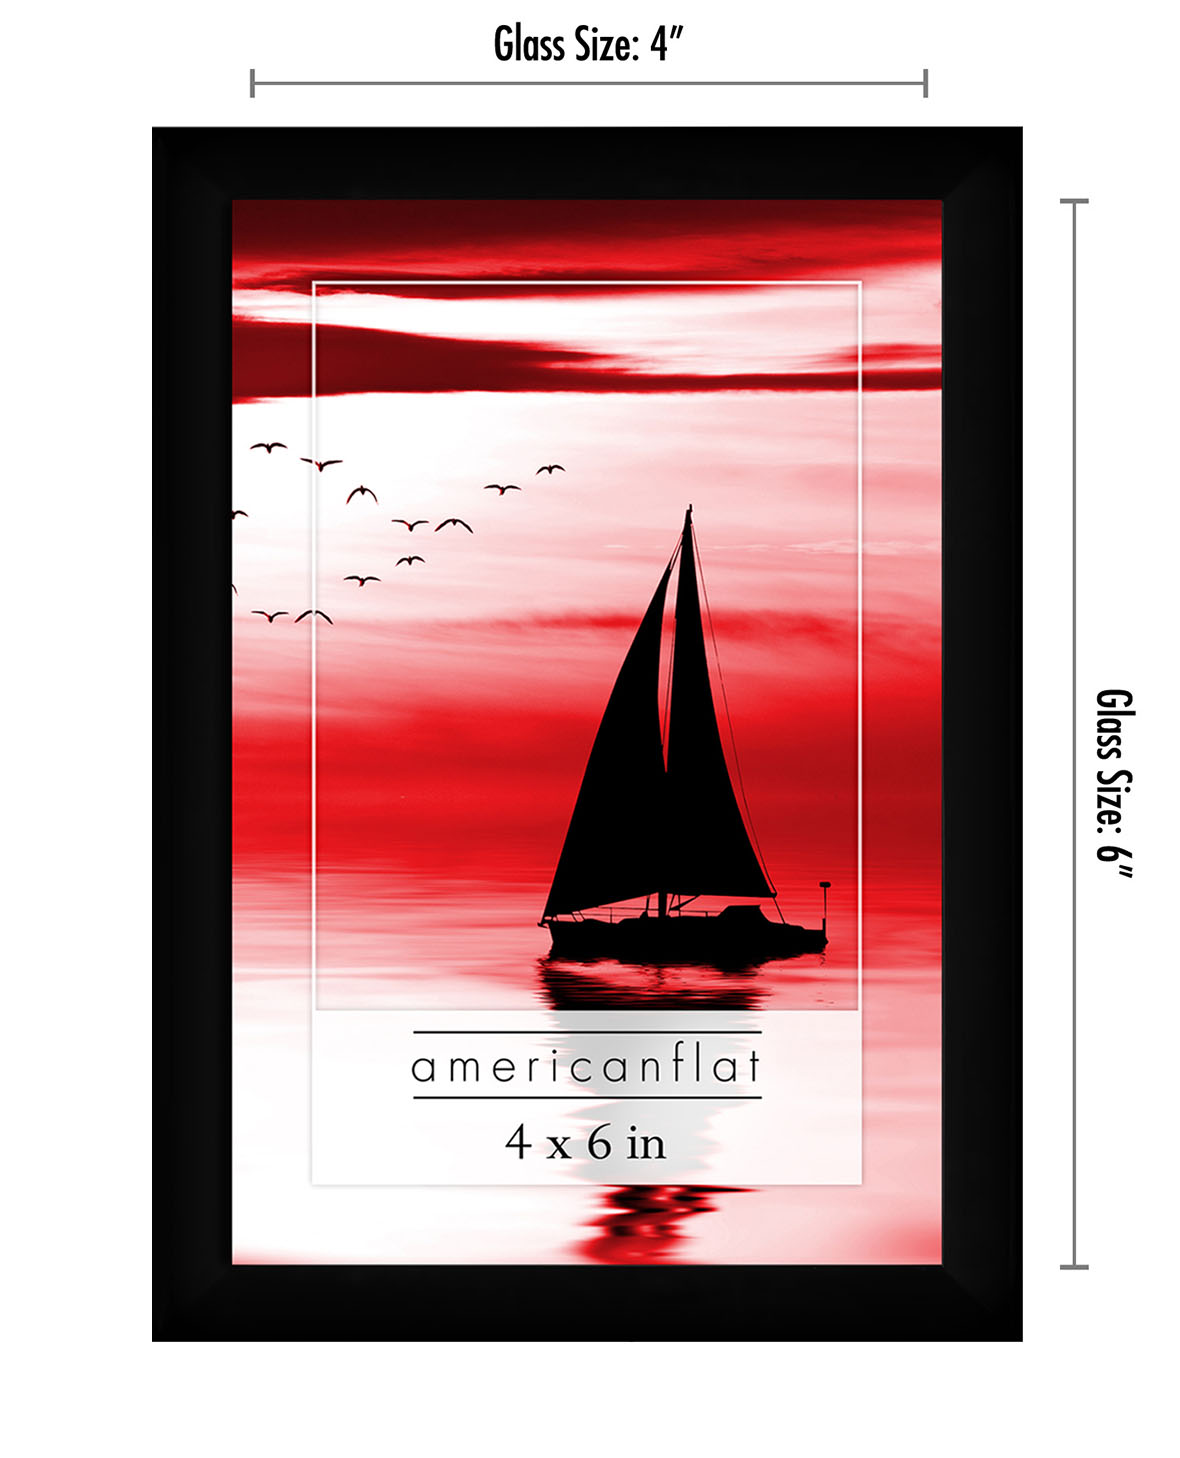 miniature 3 - Americanflat Picture Frame Black Plastic 4x6 5x7 8x10 Wall Tabletop 6 or 12 Pack